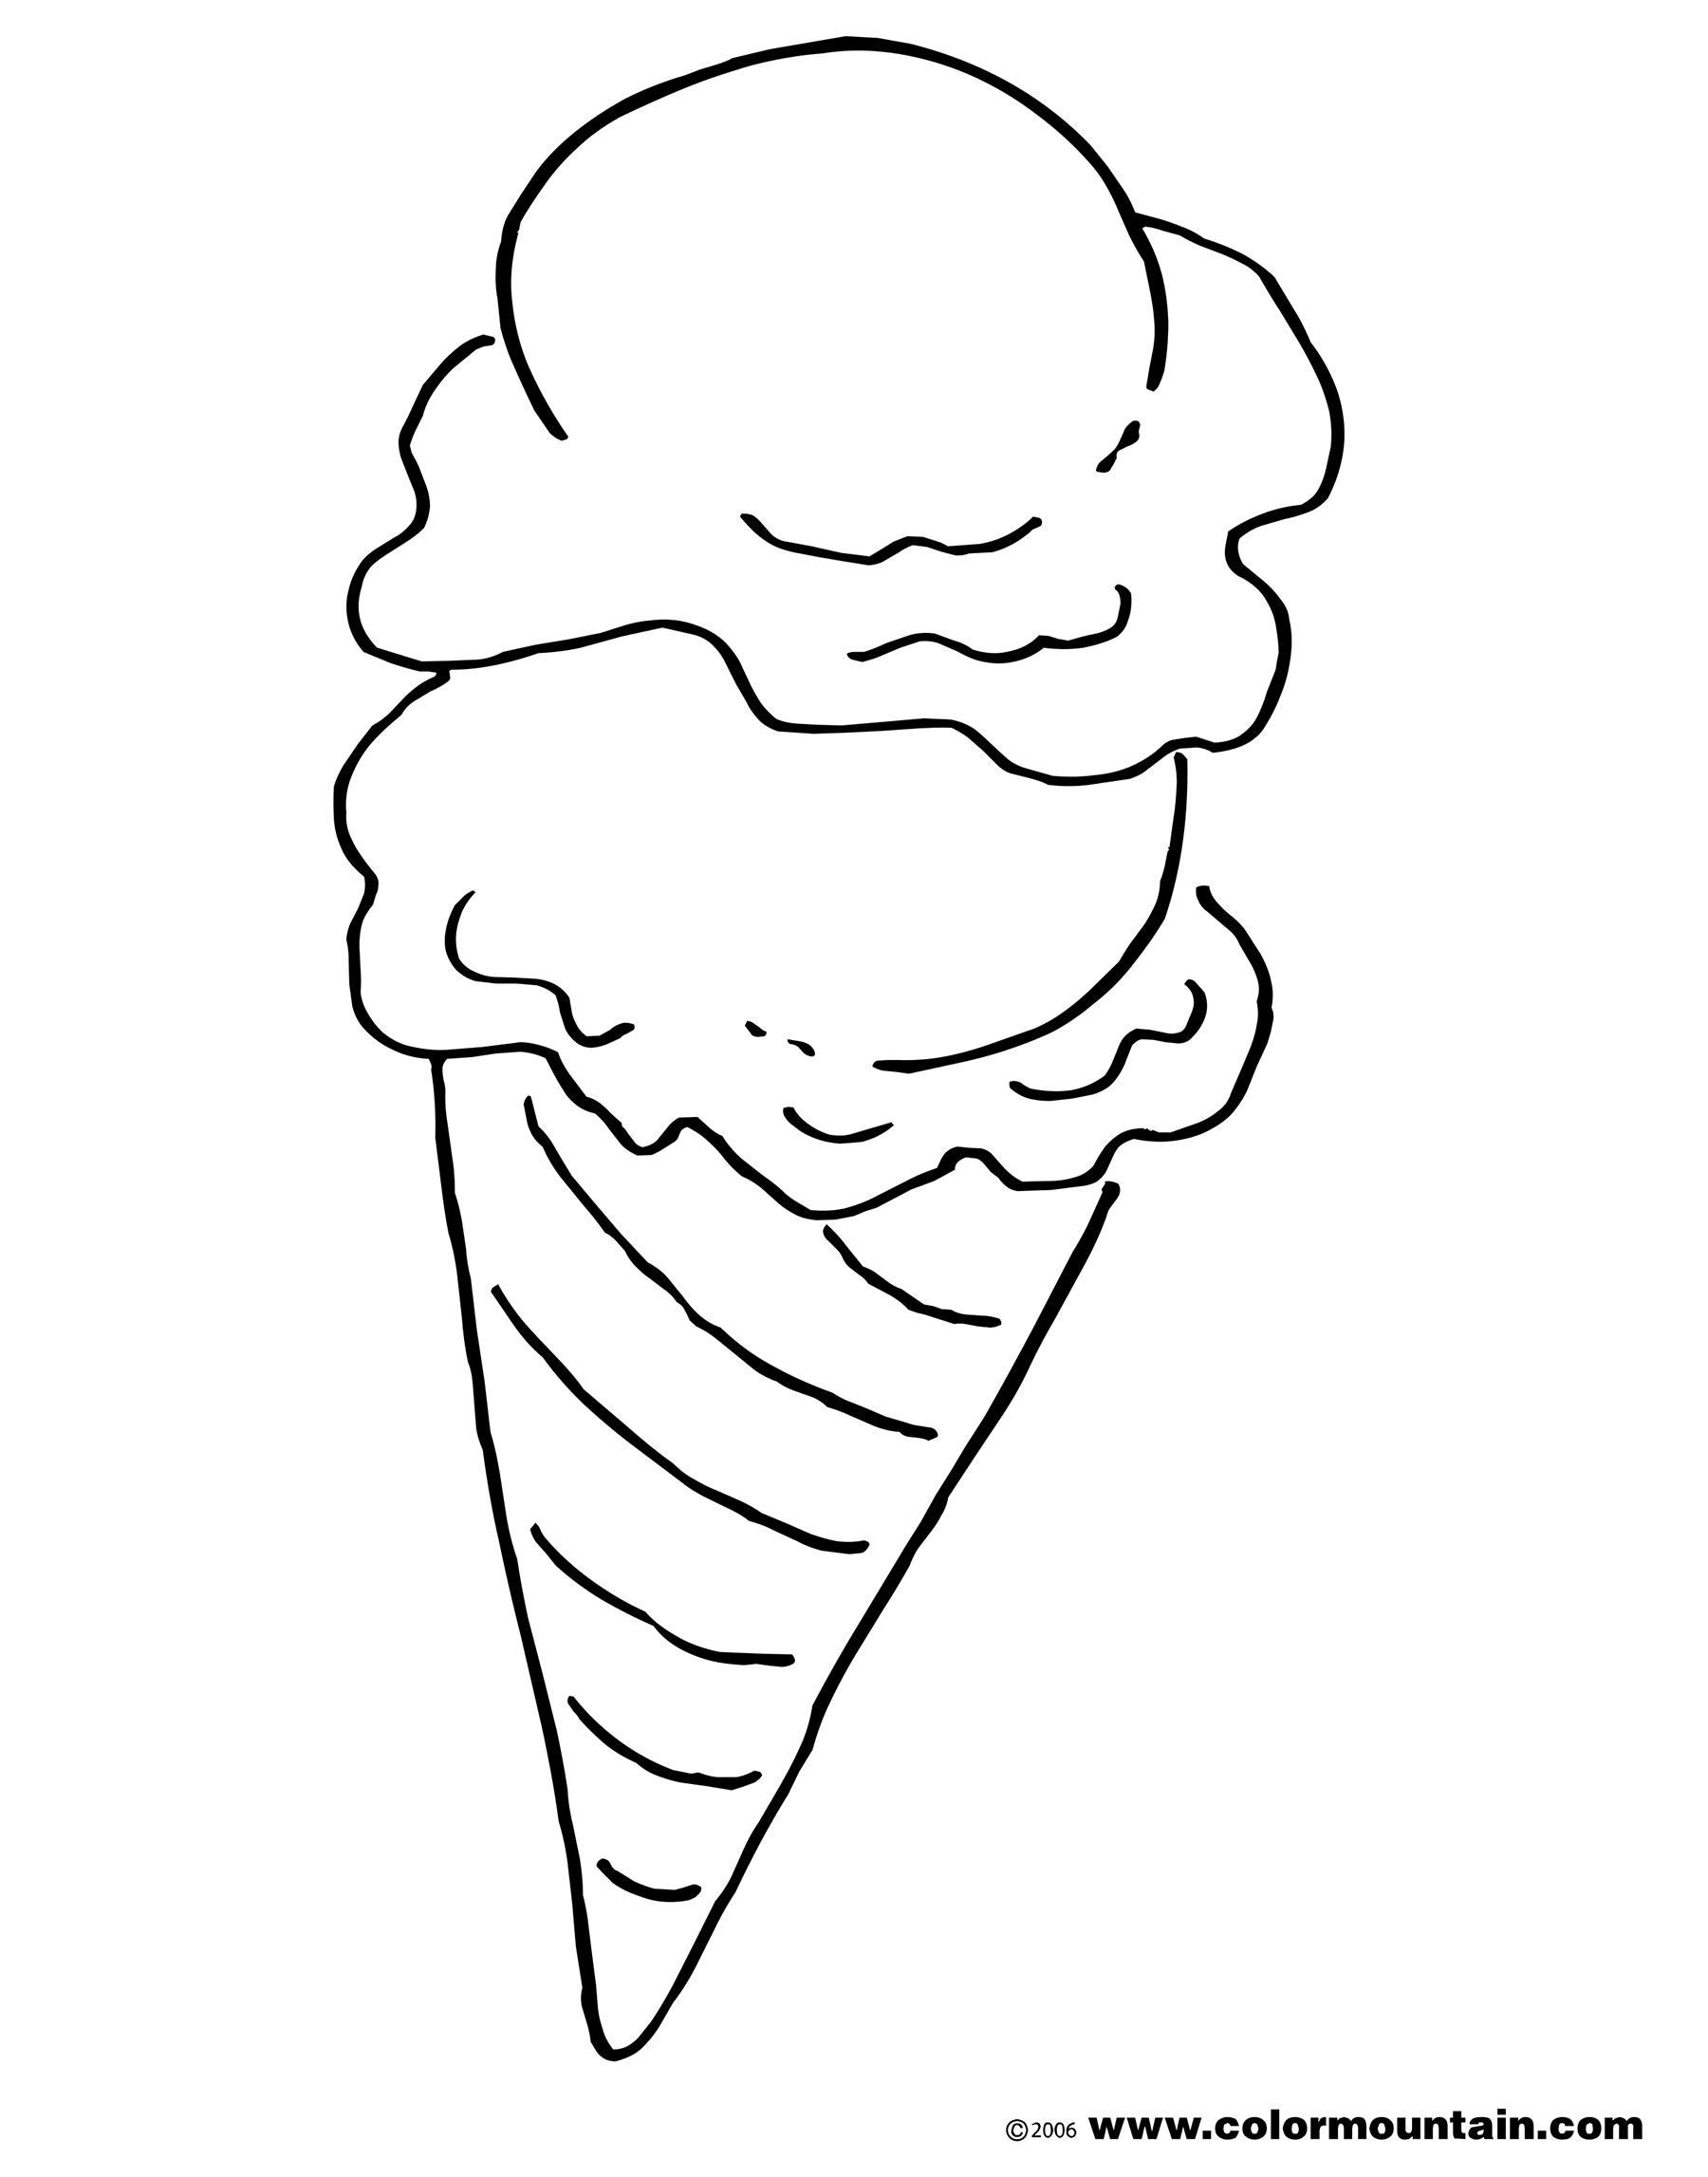 New Ice Cream Colouring Pages Coloring Coloringpages